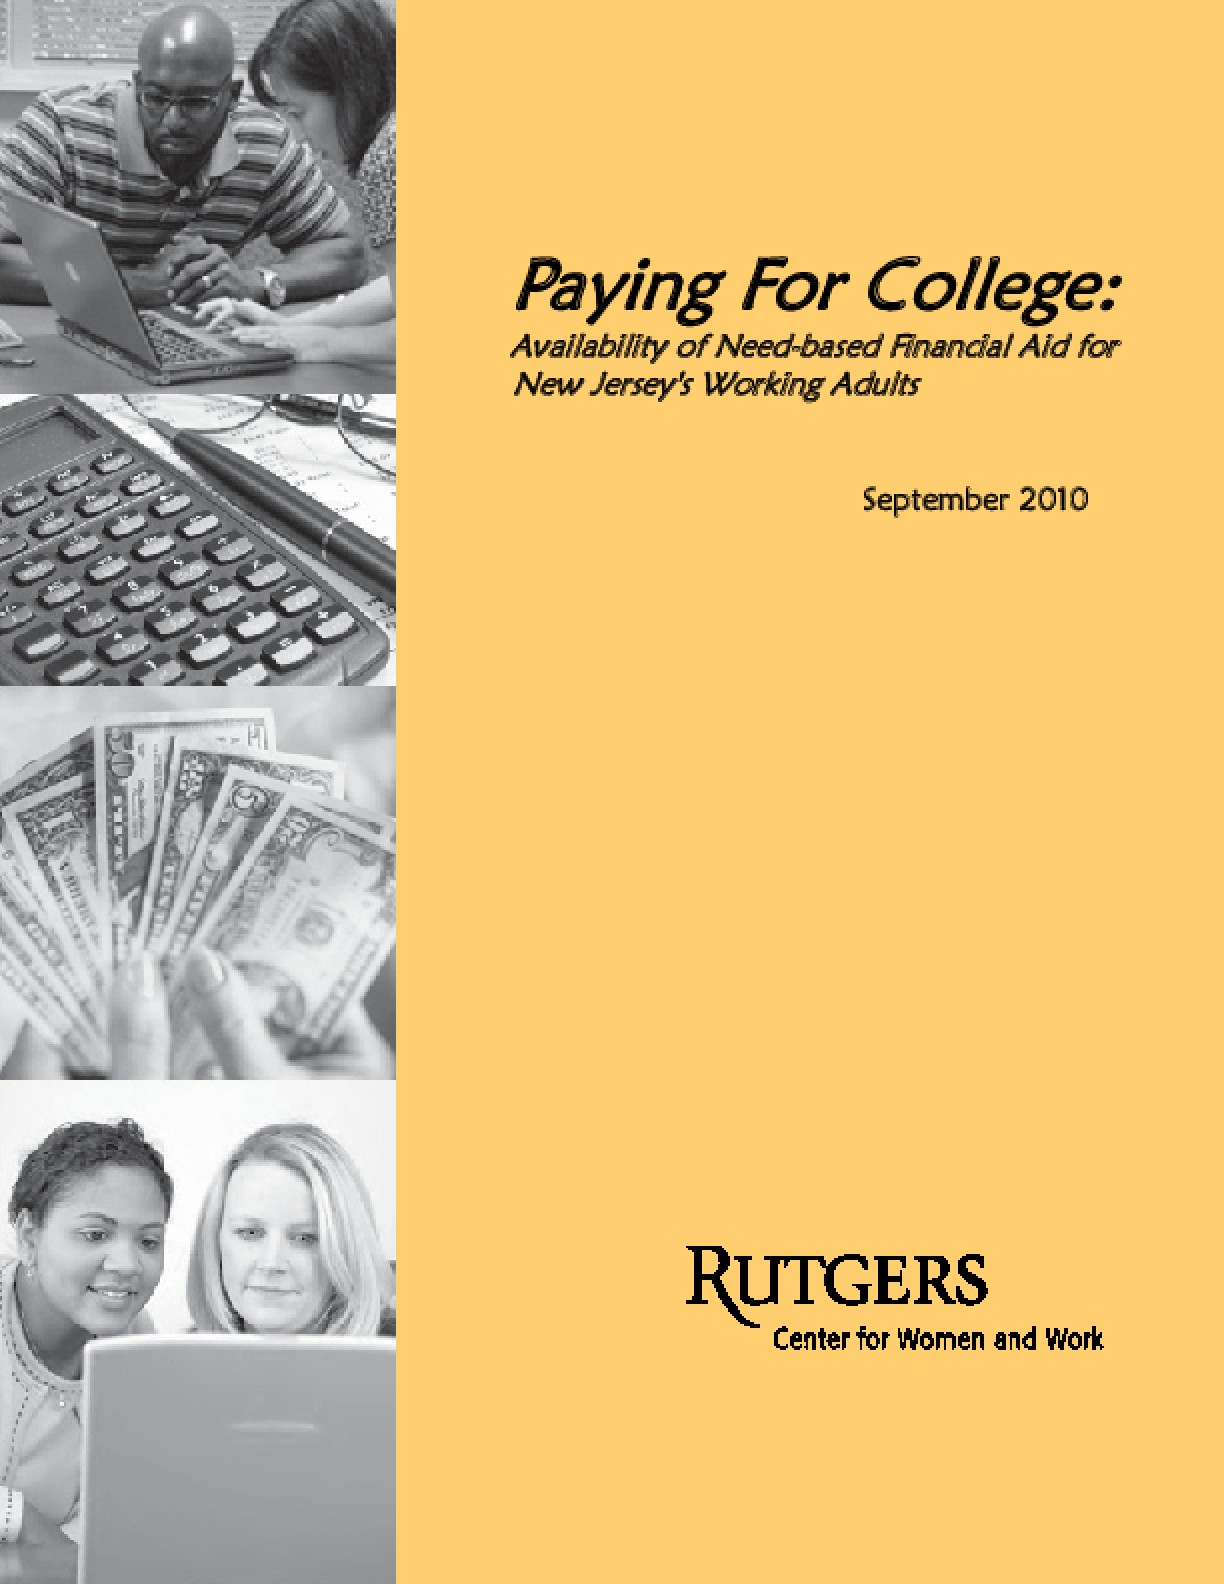 Paying for College: Availability of Need-Based Financial Aid for New Jersey's Working Adults